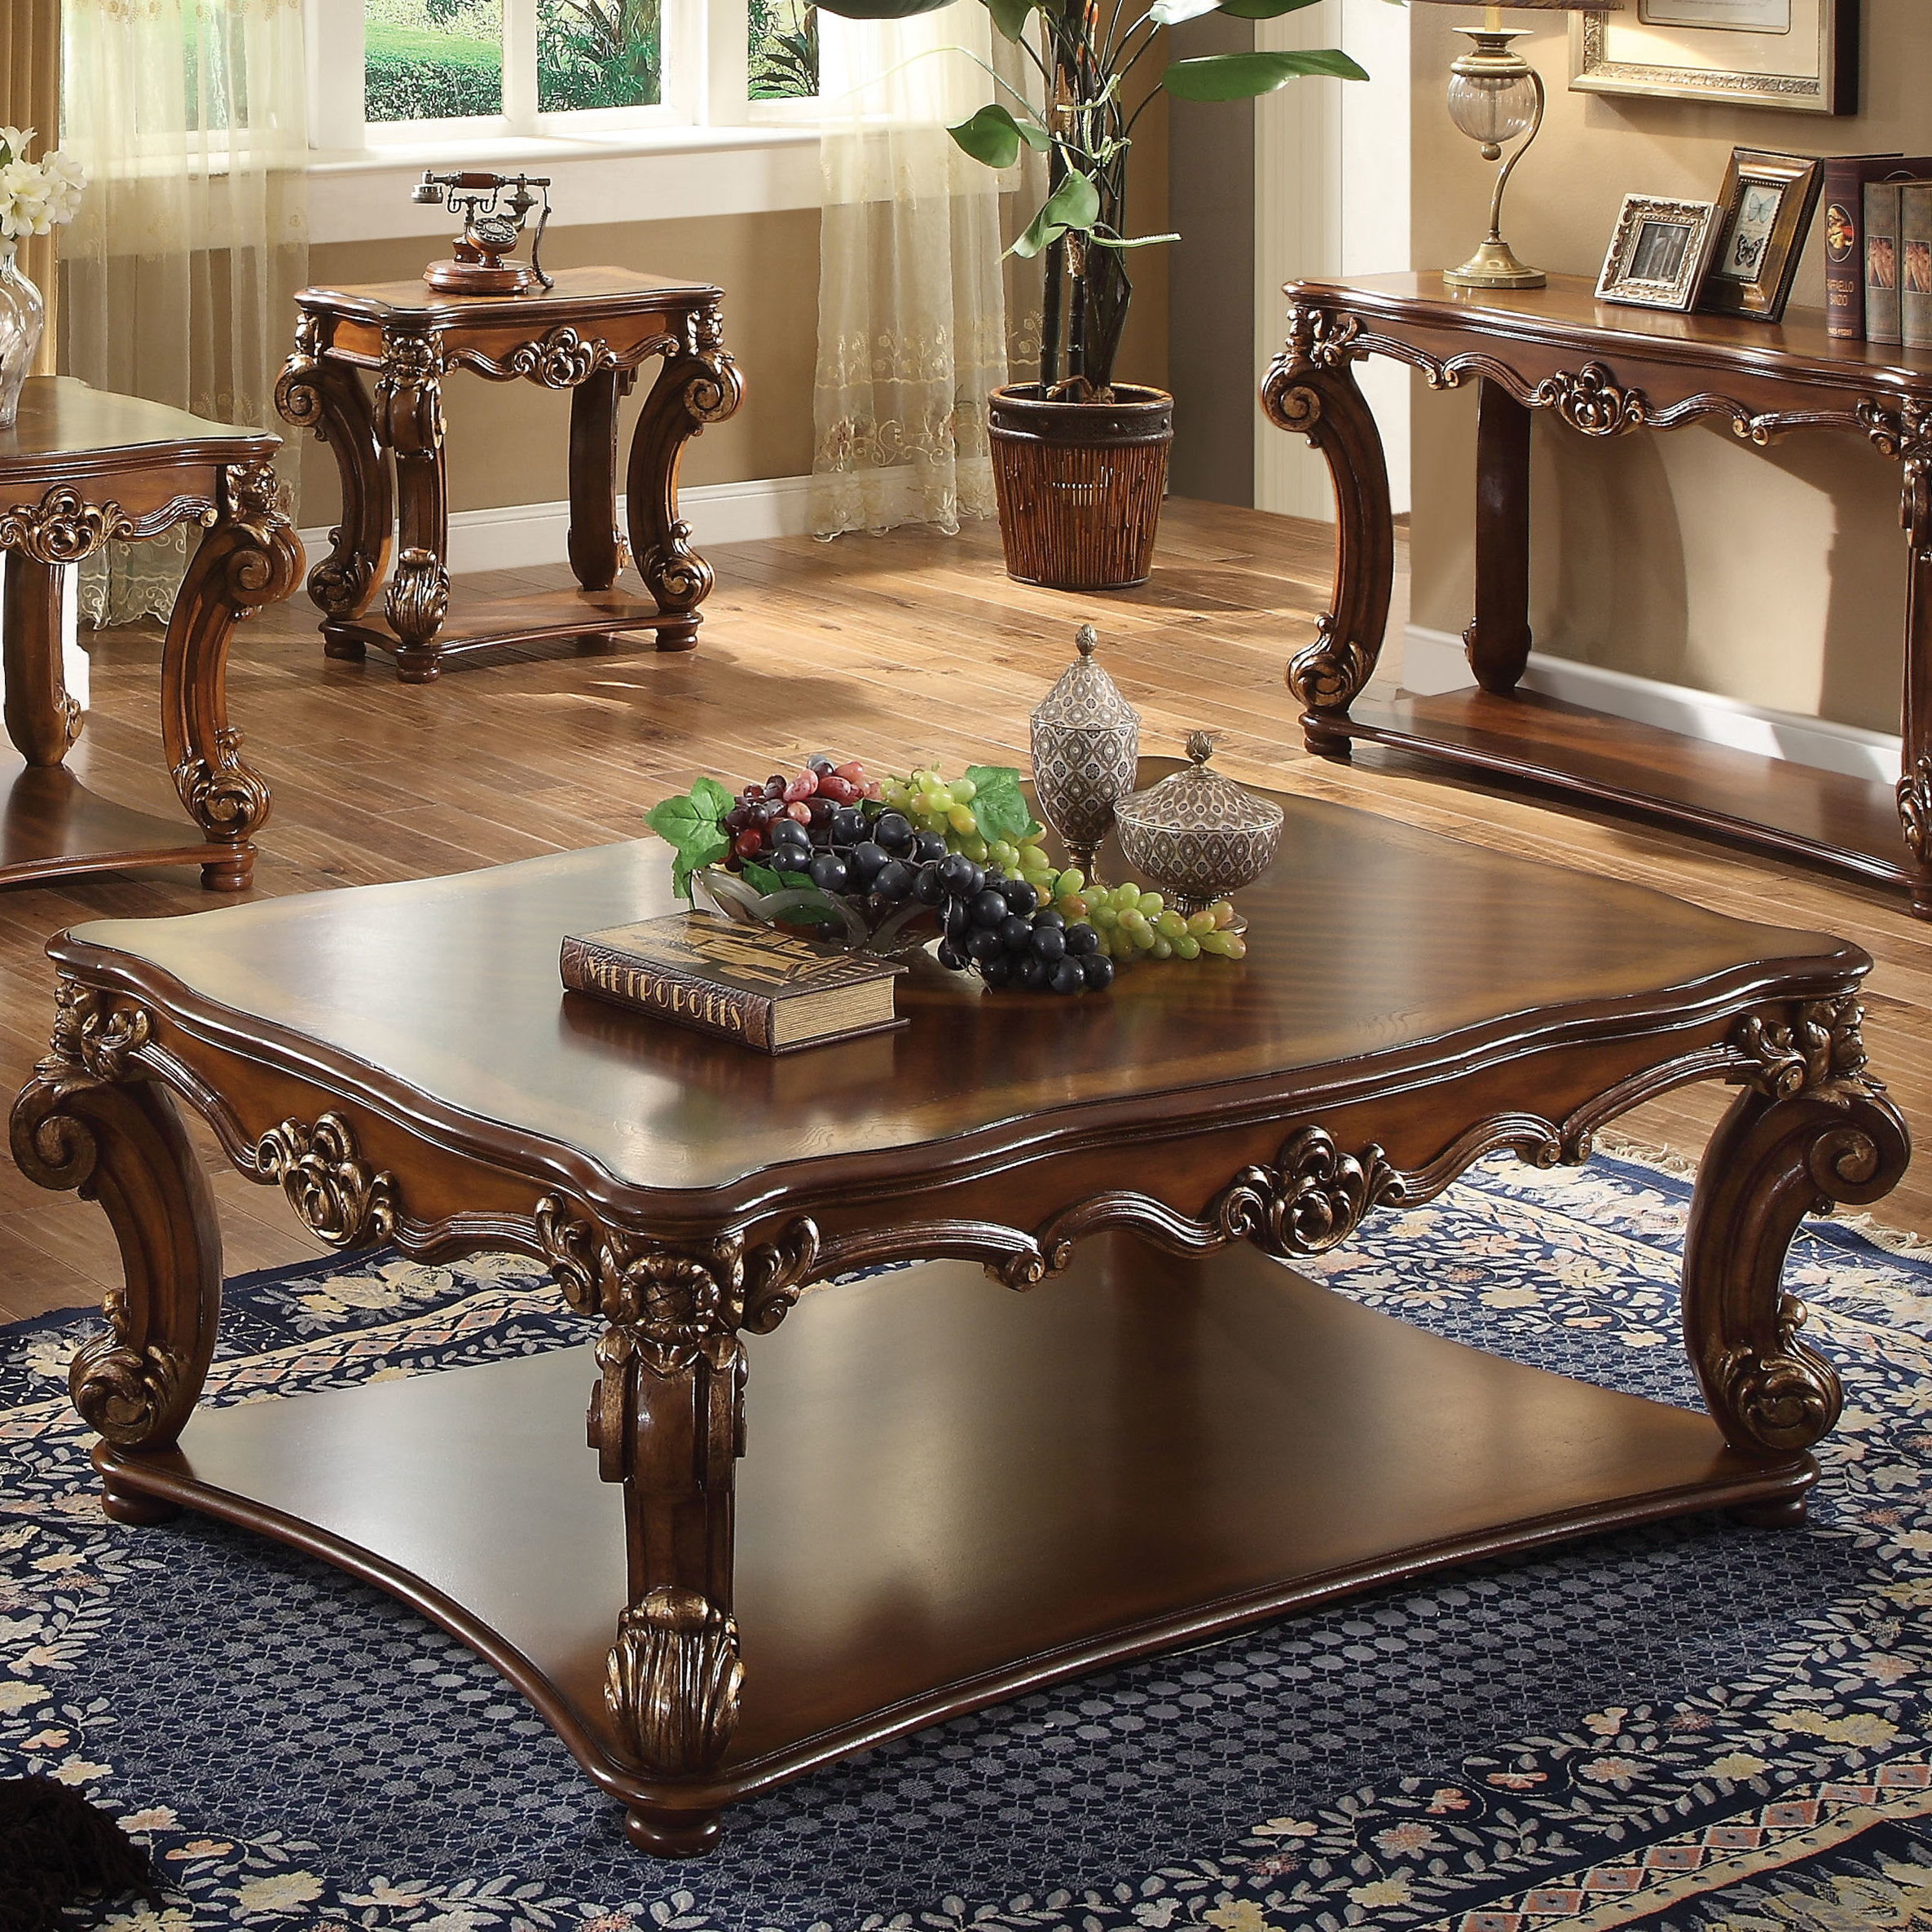 Astoria Grand Welles Traditional Coffee Table Reviews Wayfair throughout dimensions 2371 X 2371